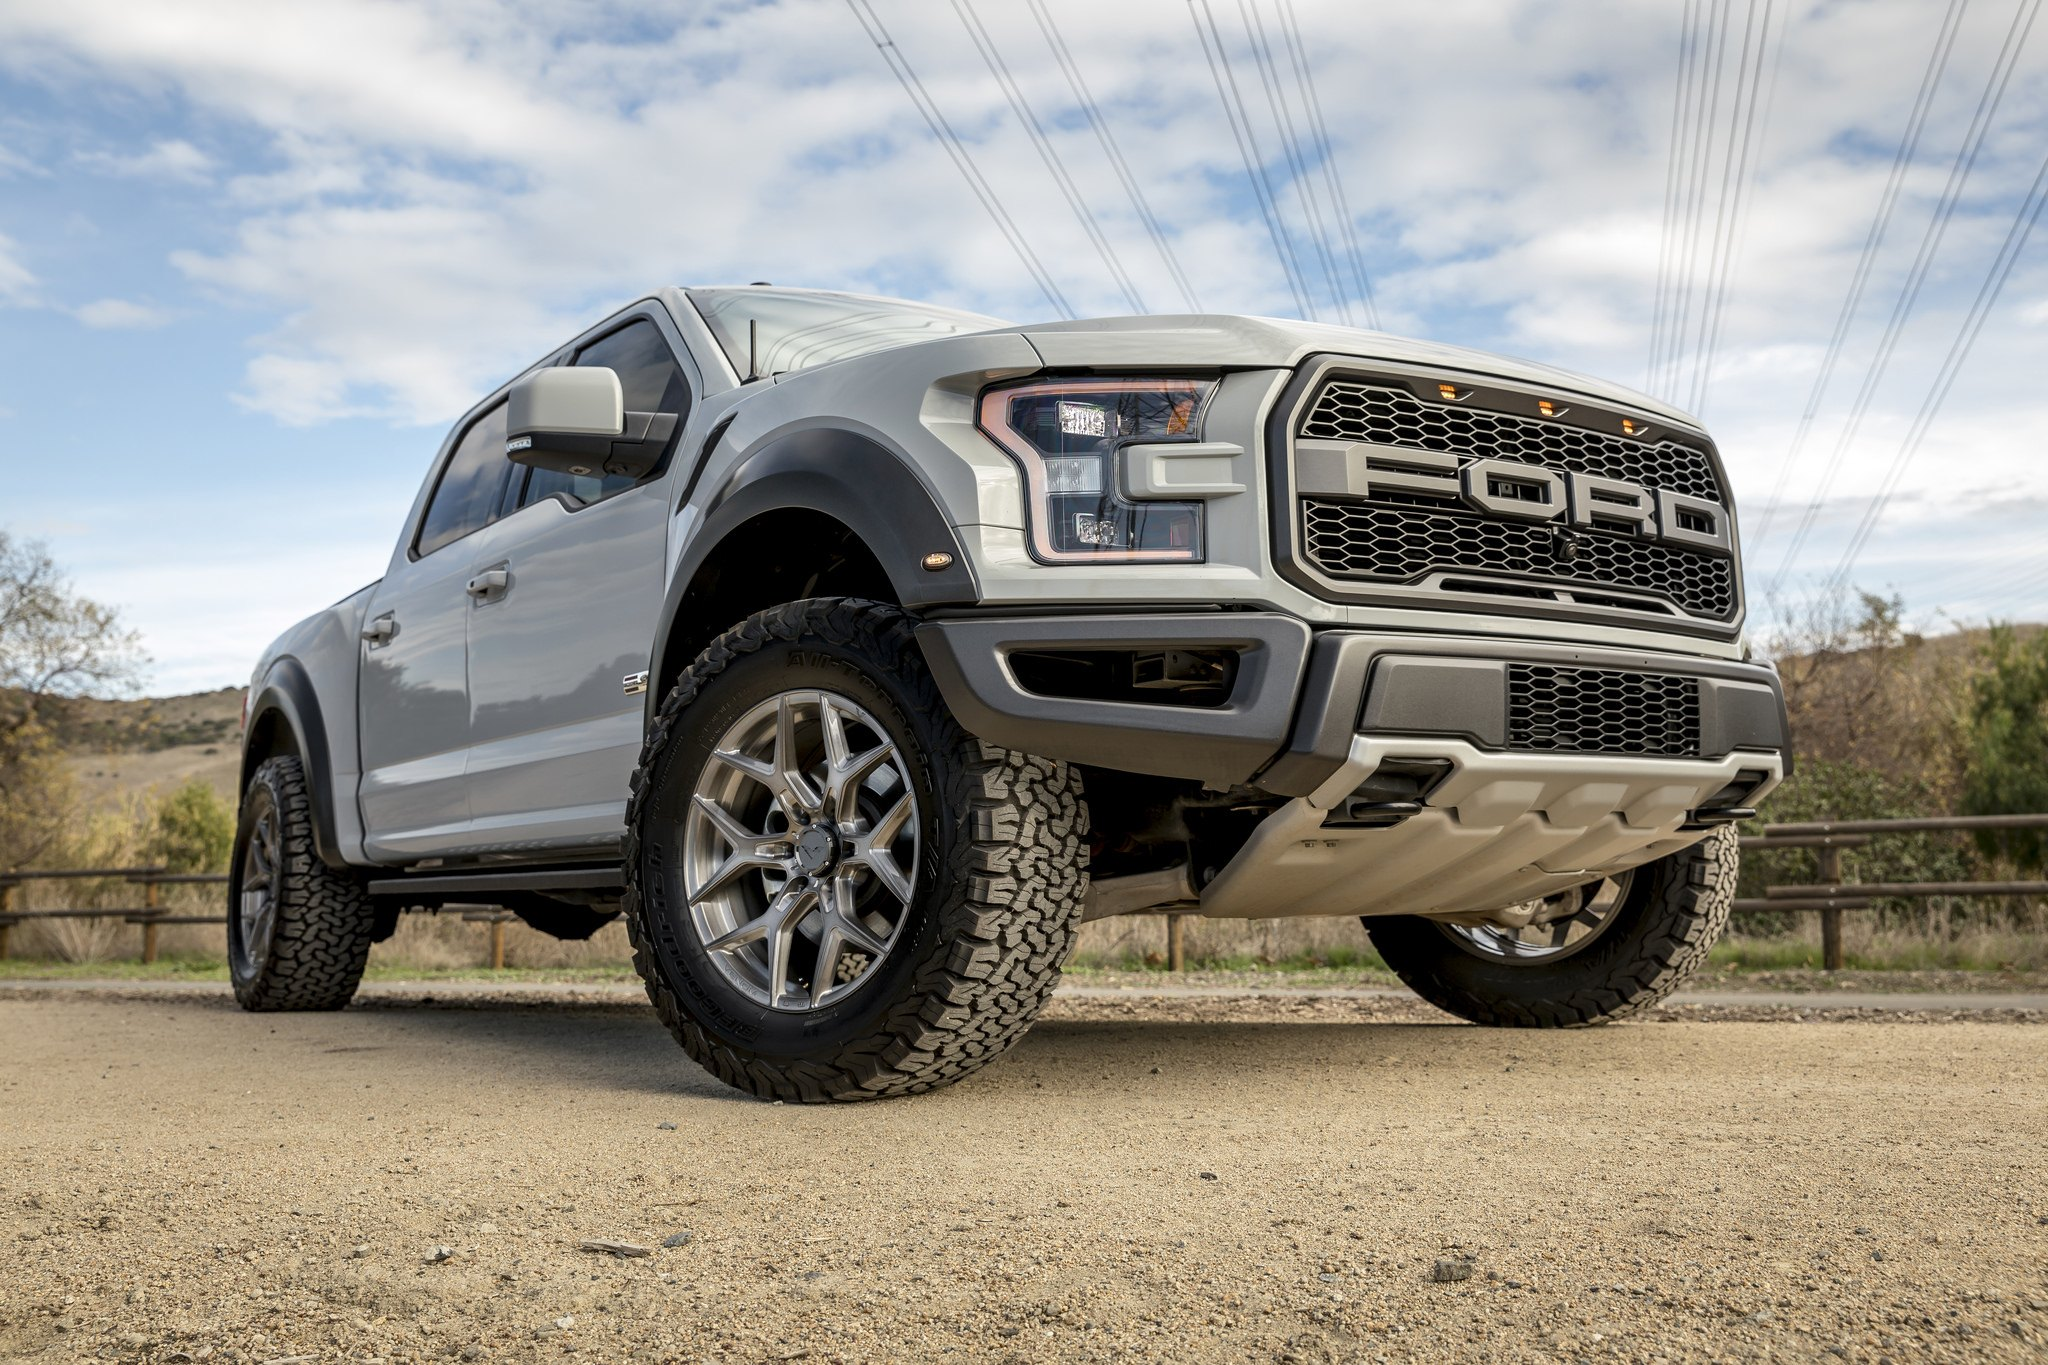 Aftermarket Front Bumper Guard on Gray Lifted Ford F-150 - Photo by Vorsteiner